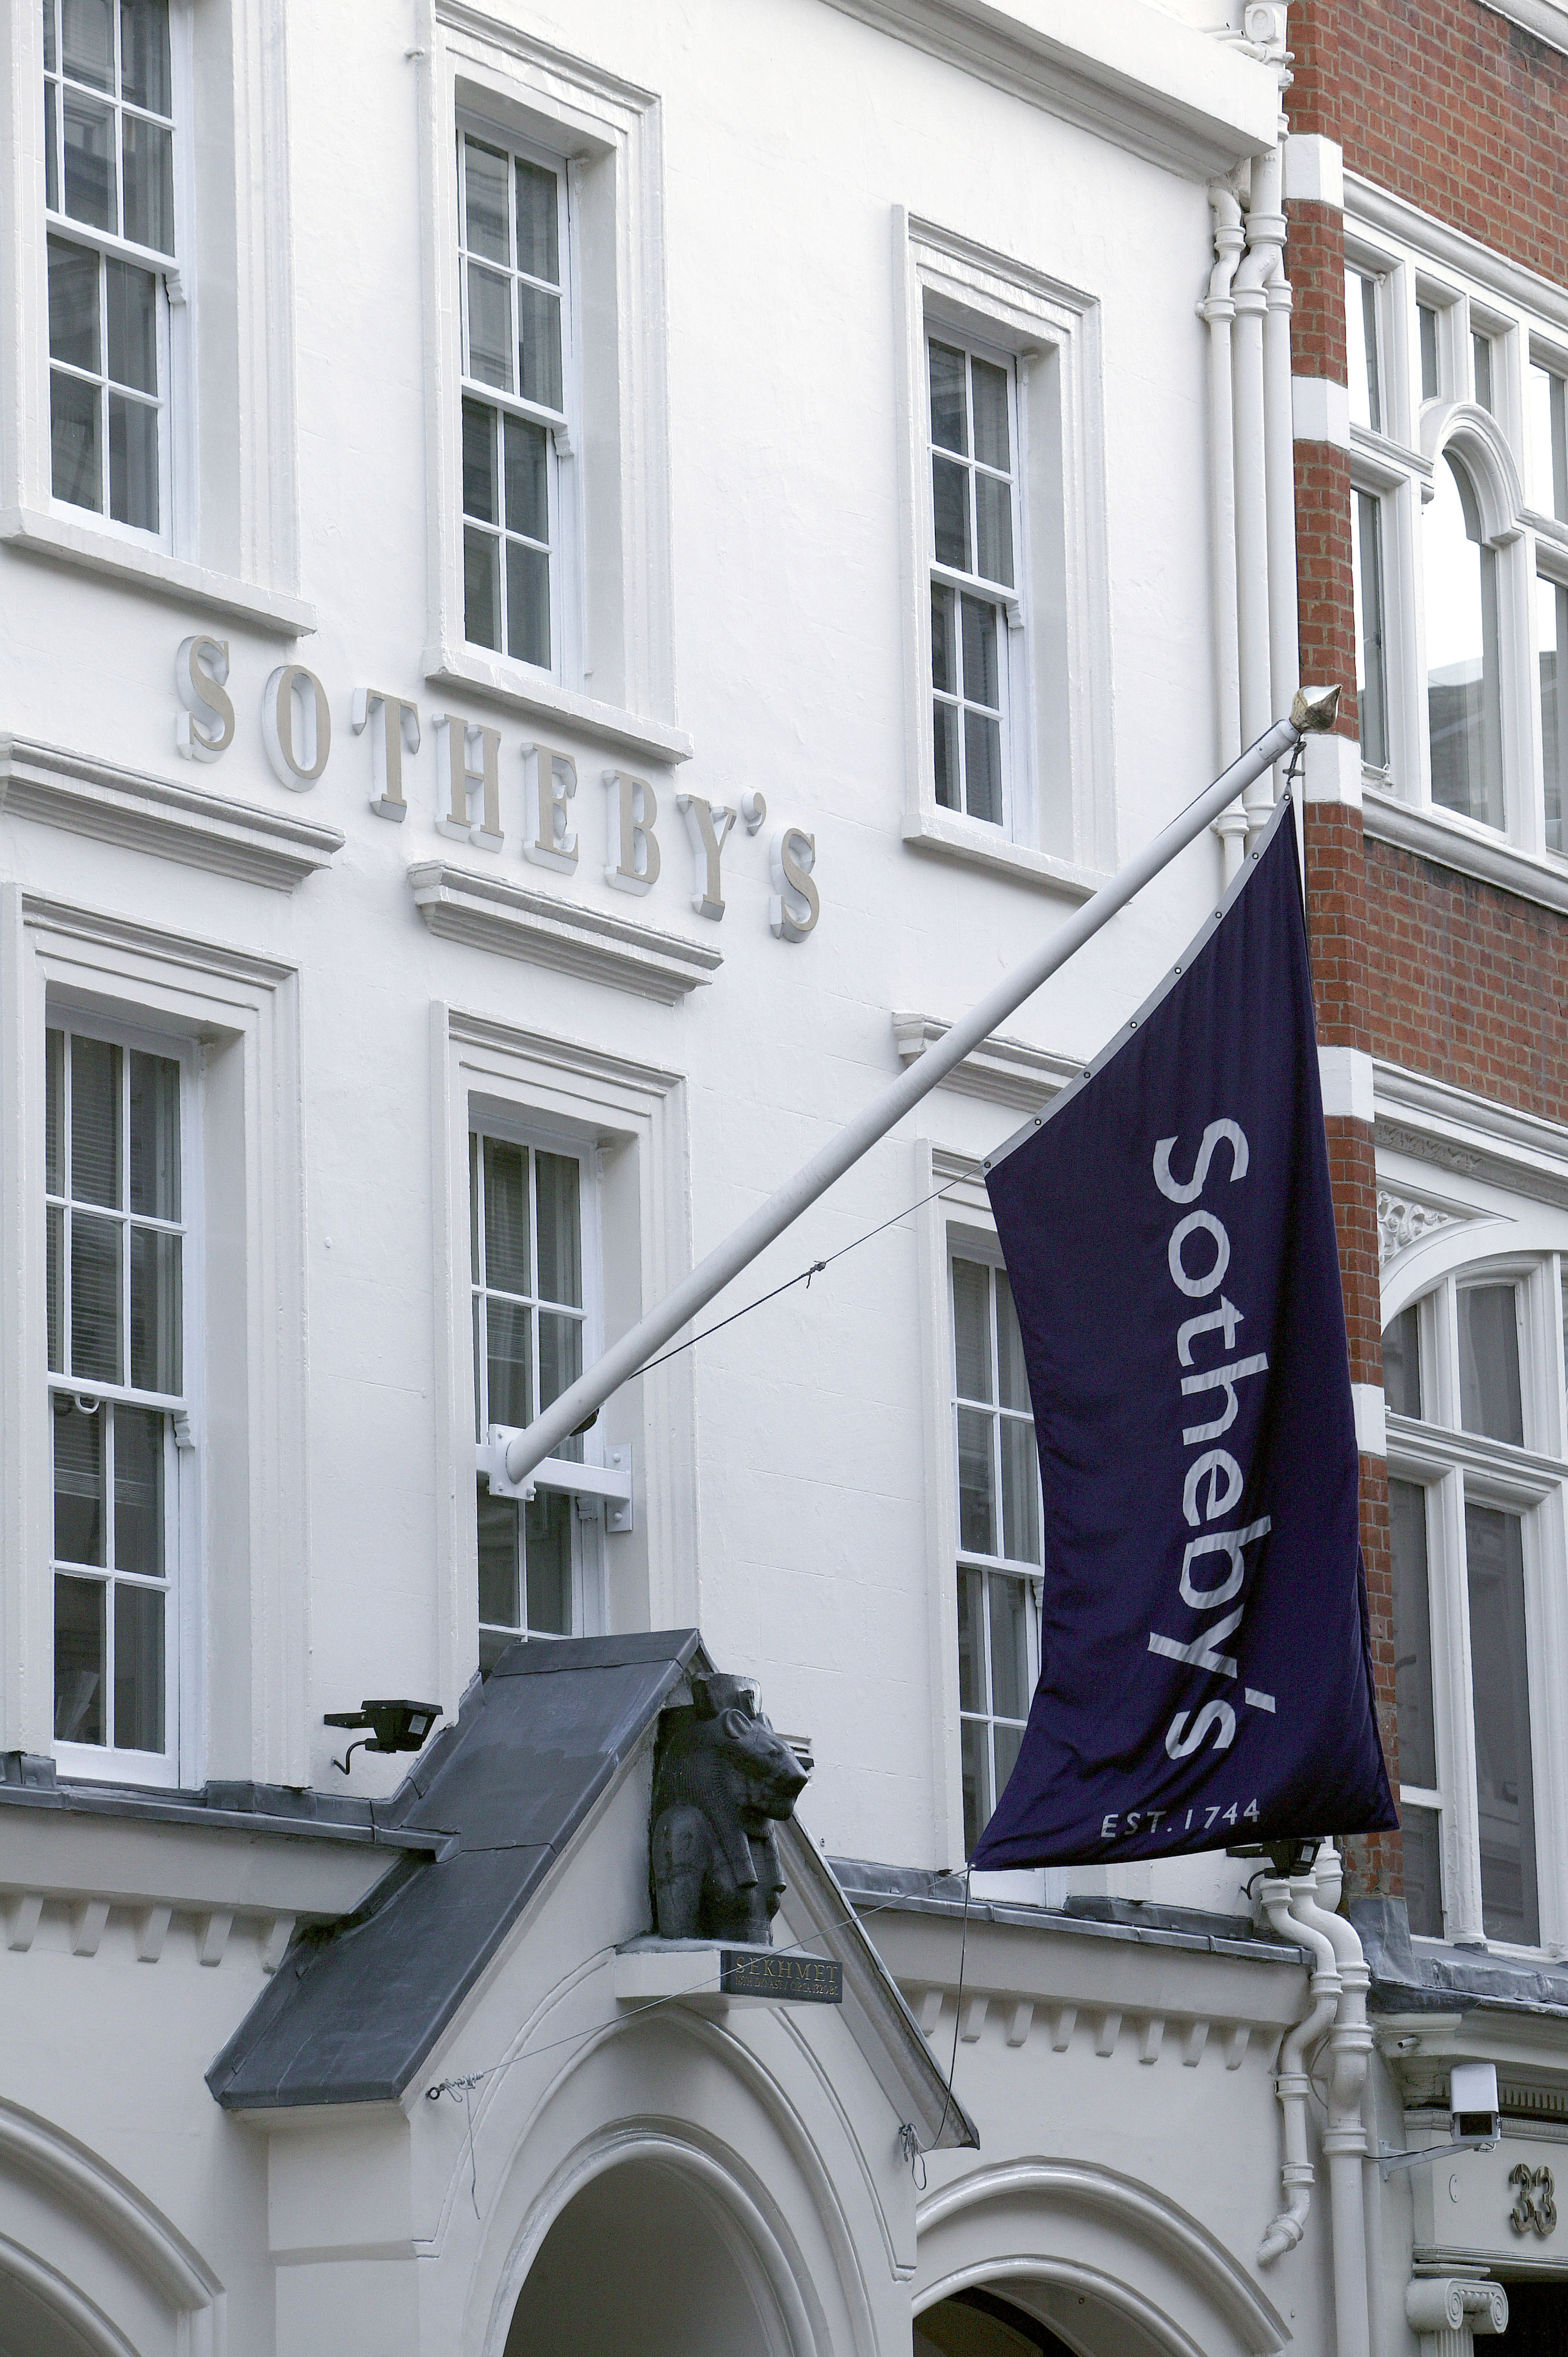 Sotheby's Shareholders Attempt to Stop $2.7 Billion Purchase of Auction House by BidFair